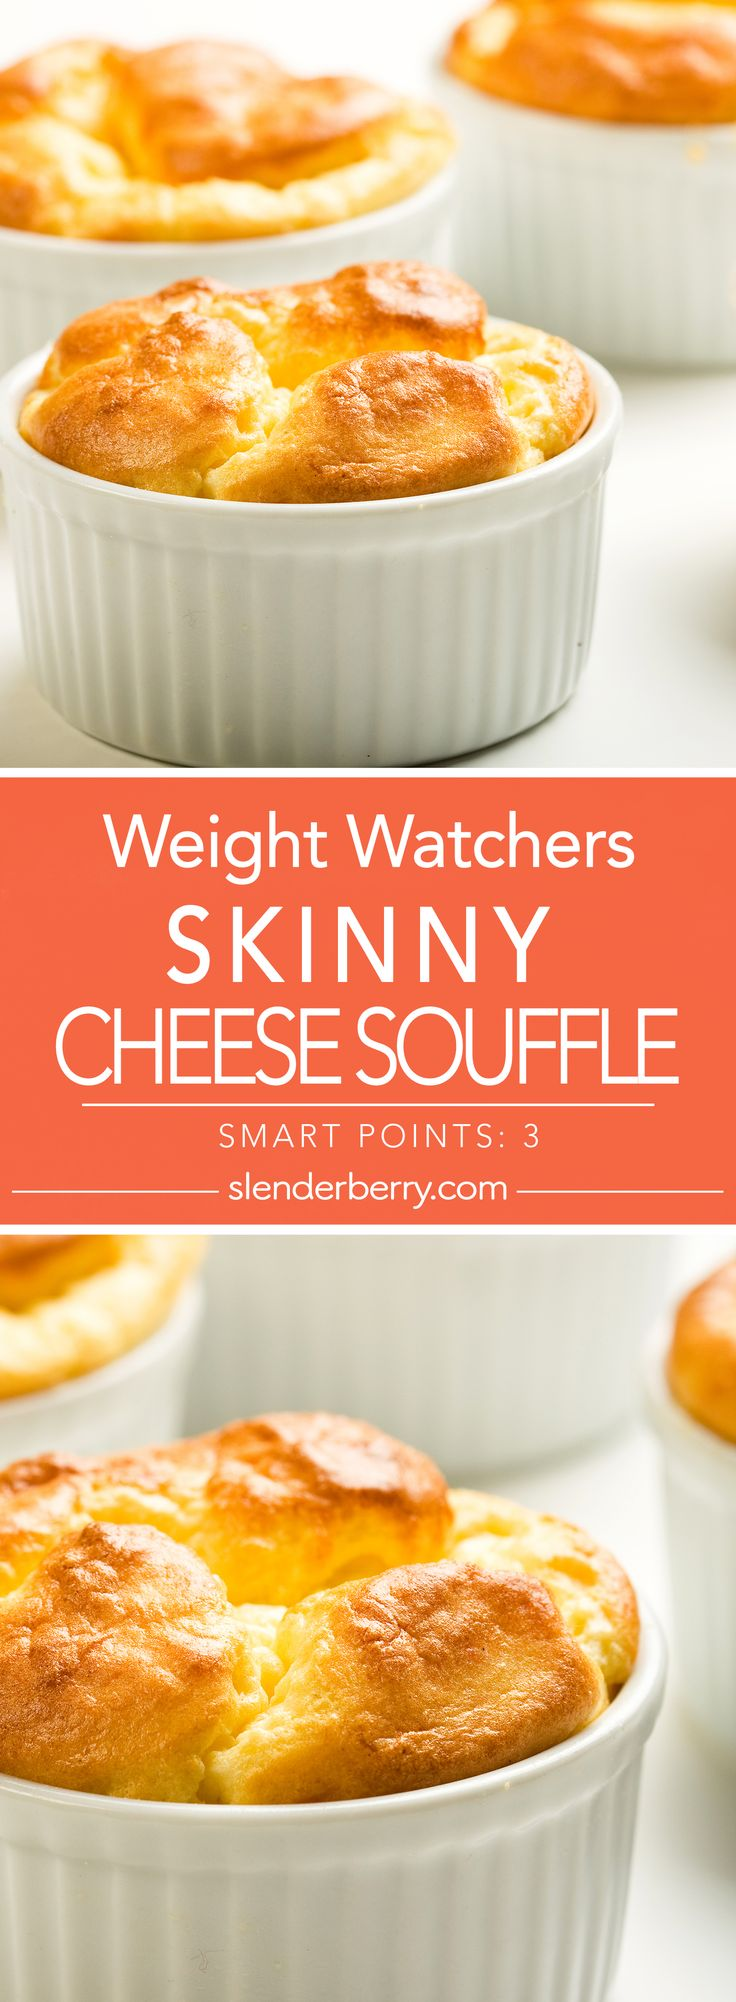 Weight Watchers Skinny Cheese Souffle Recipe - 3 Smart Points